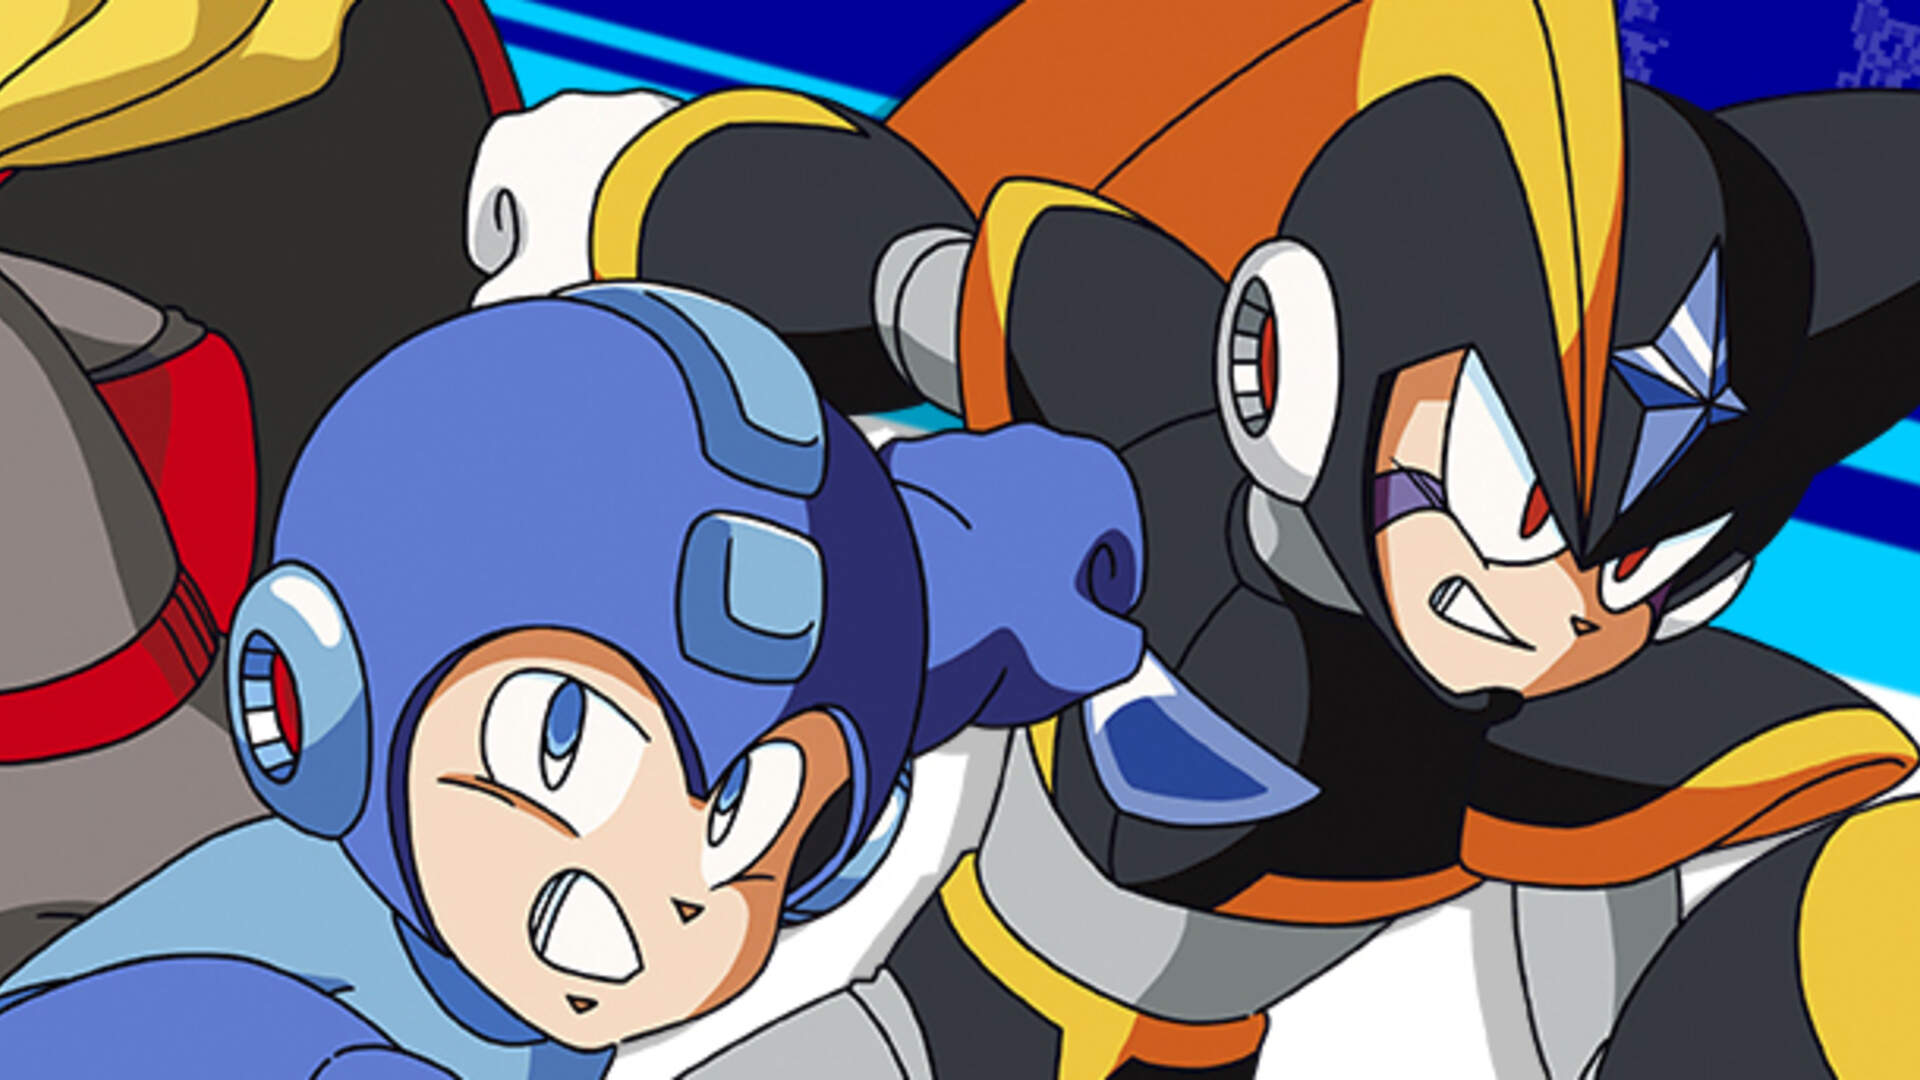 Mega Man Legacy Collection 1 + 2 Is Coming to the Nintendo Switch in May, but Not Everyone Is Happy About It